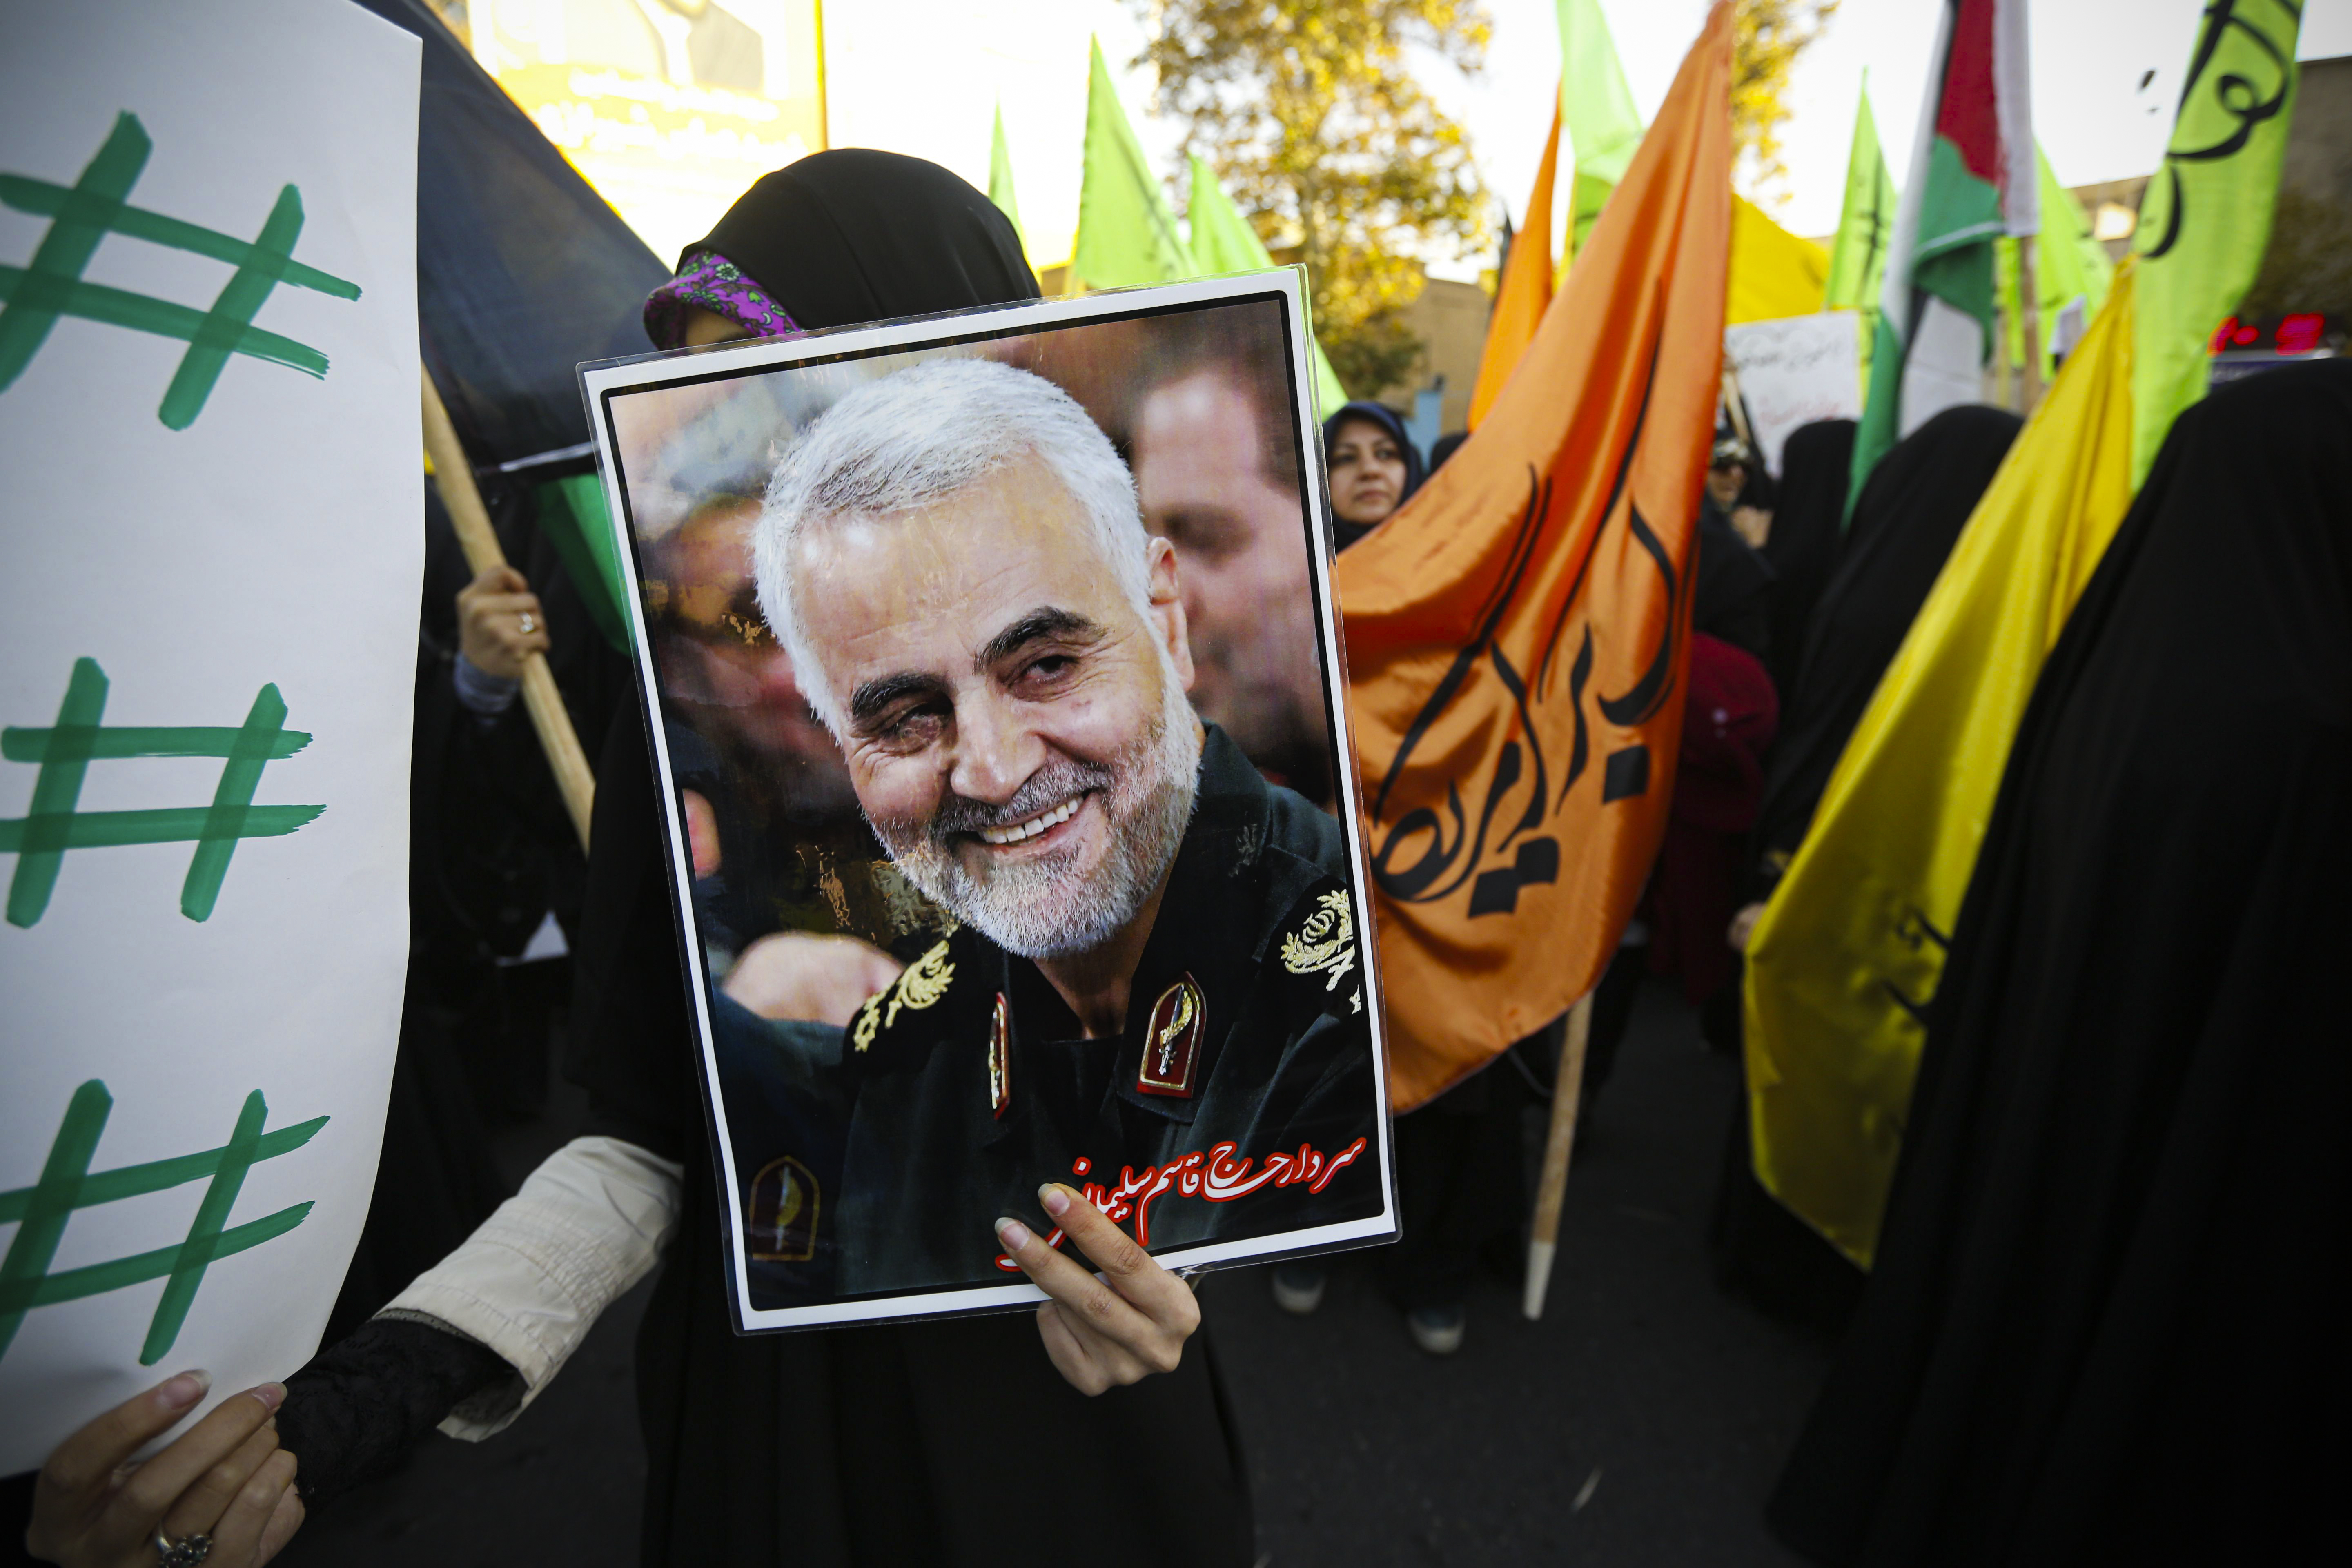 Killing Iran's Qassem Soleimani changes the game in the Middle East